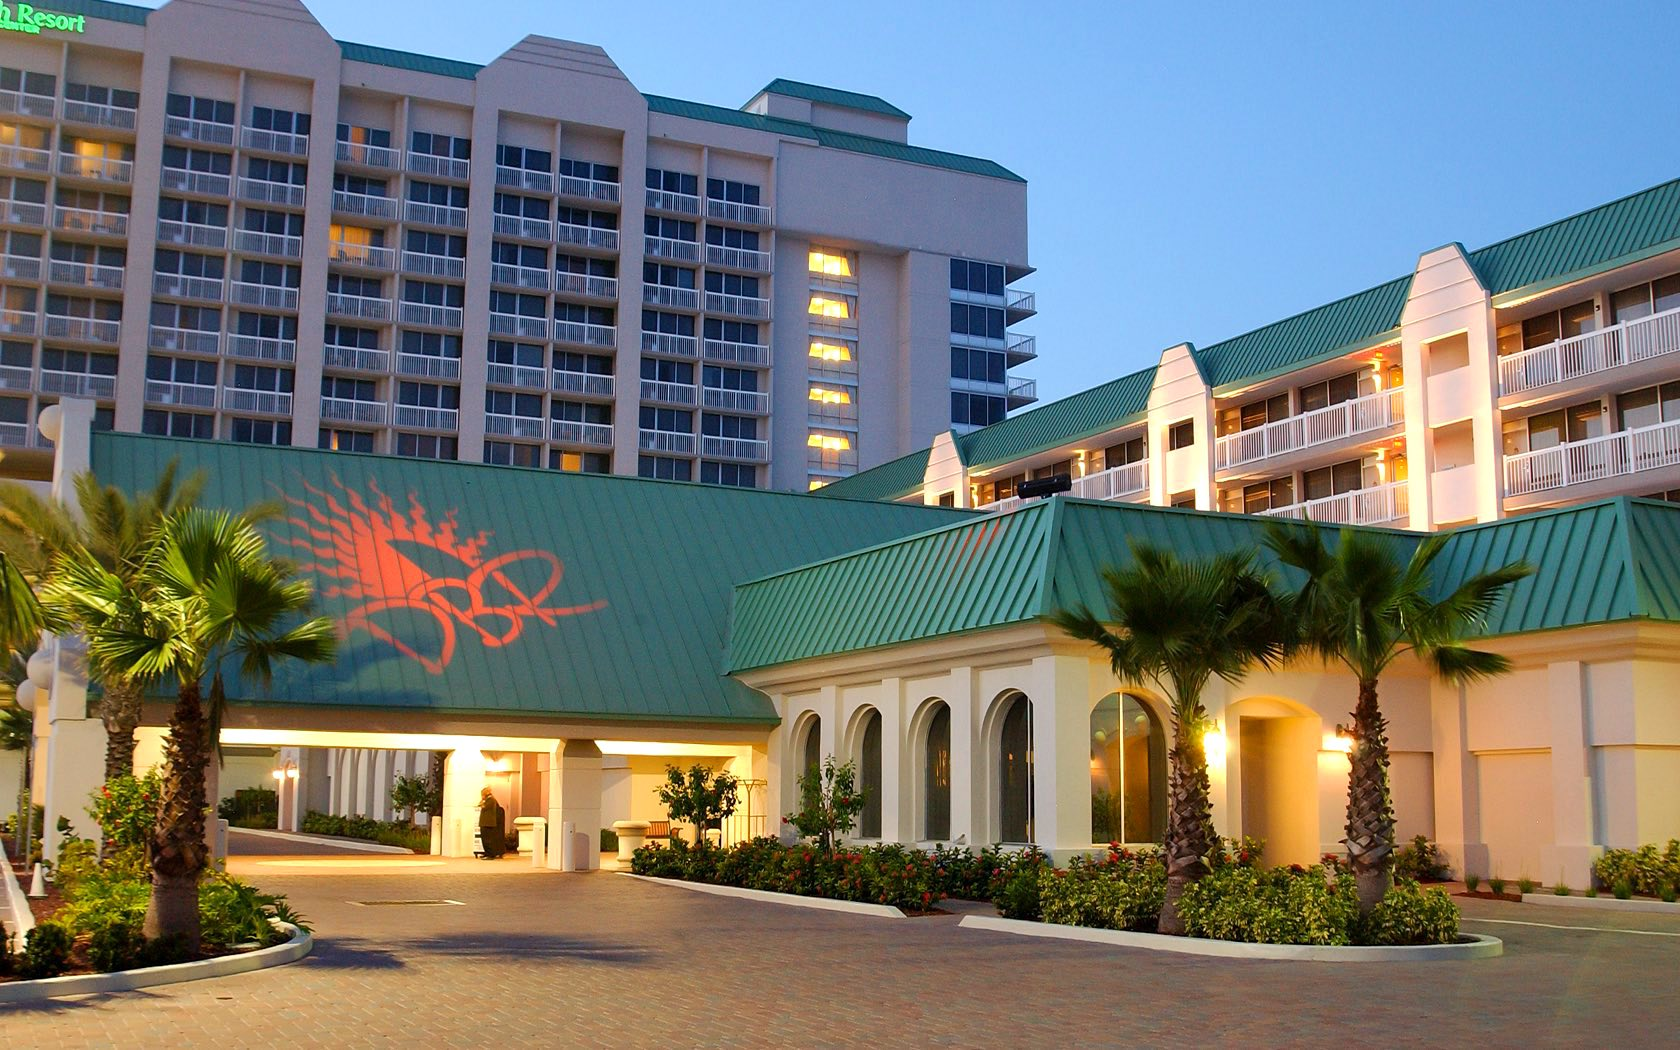 Daytona Beach Resort, Daytona Beach, FL Real Estate ...